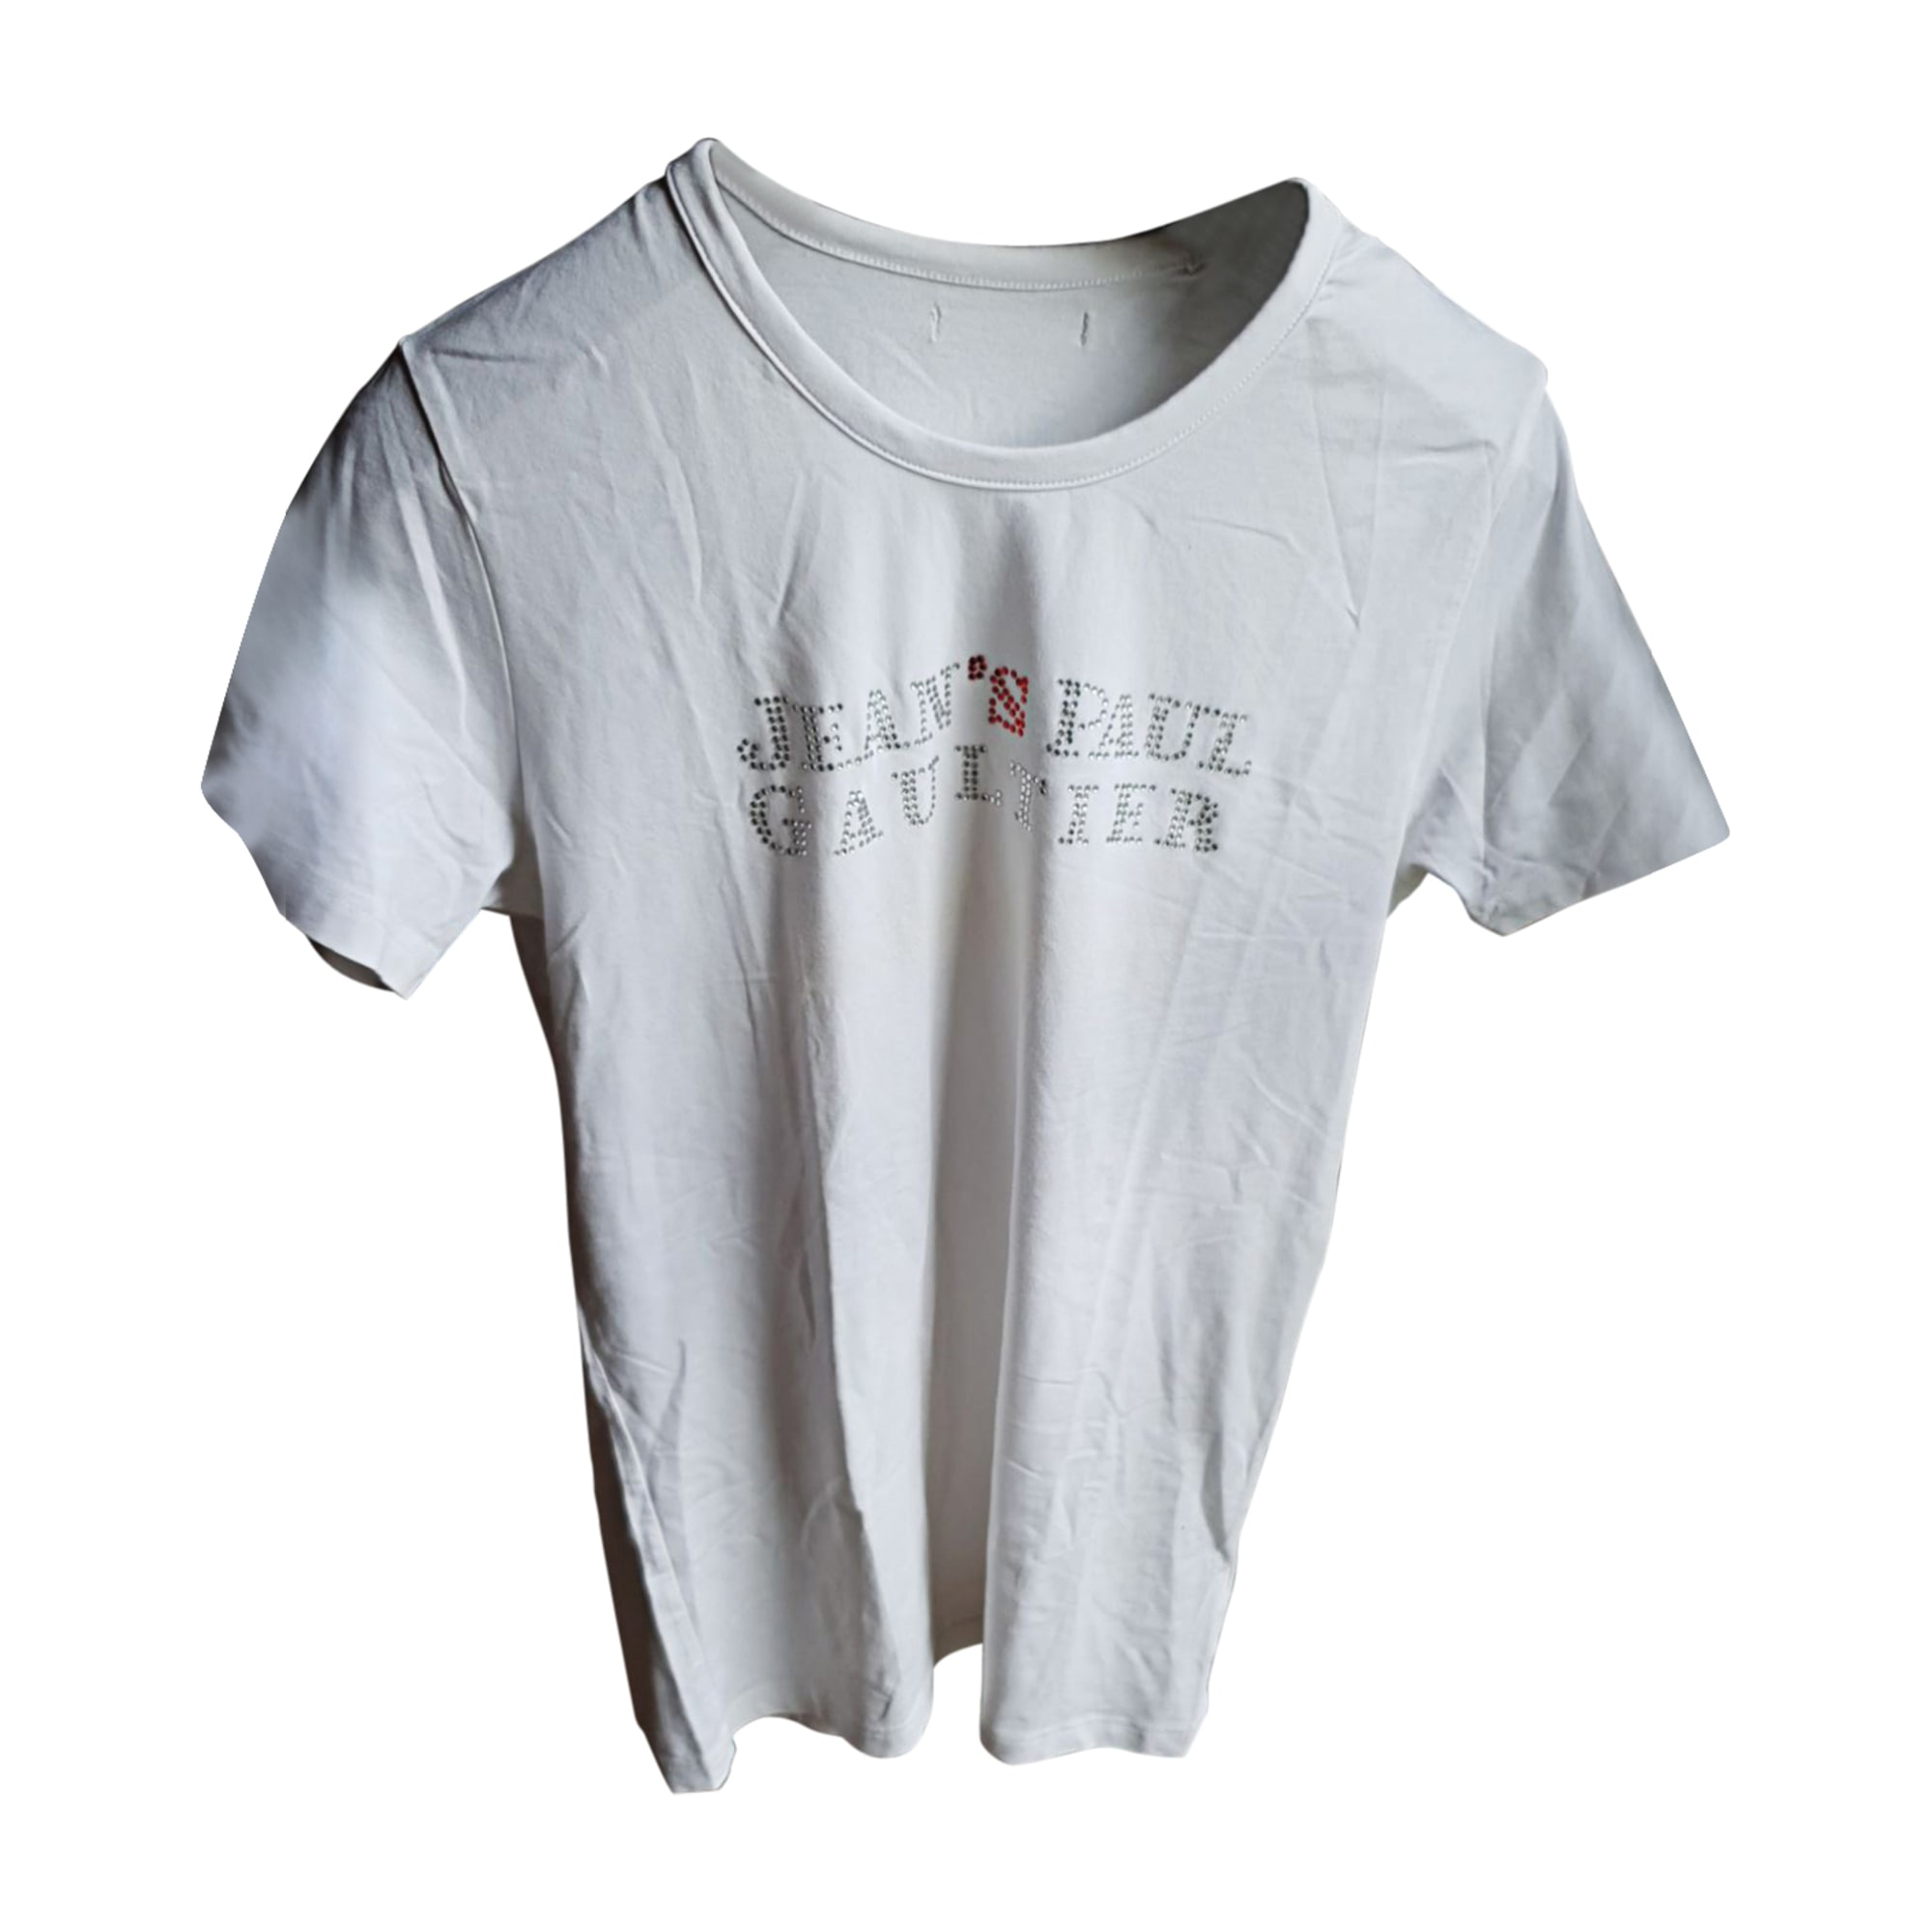 T-shirt JEAN PAUL GAULTIER White, off-white, ecru